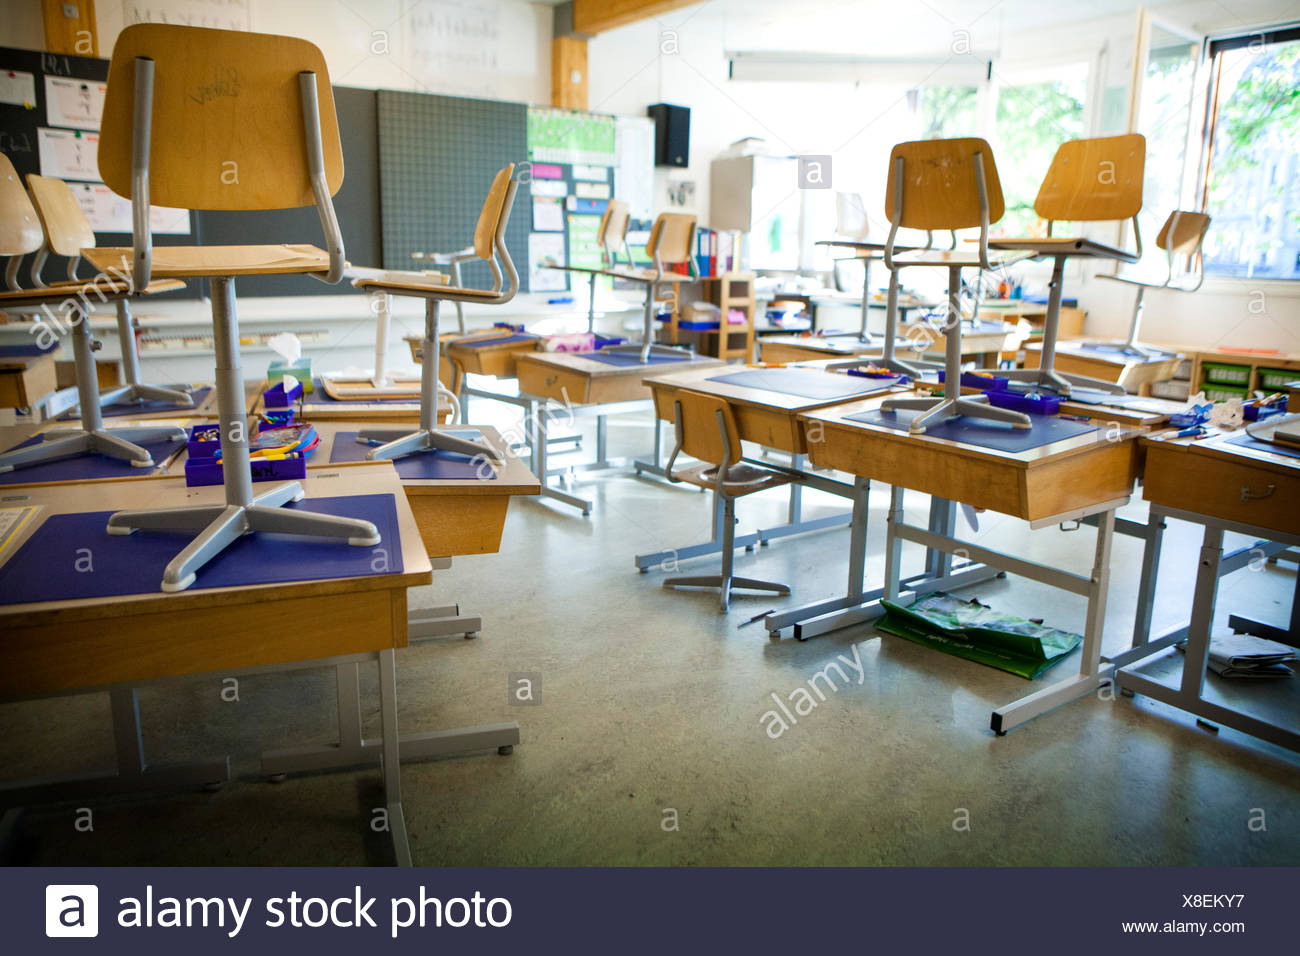 Primary school - Stock Image